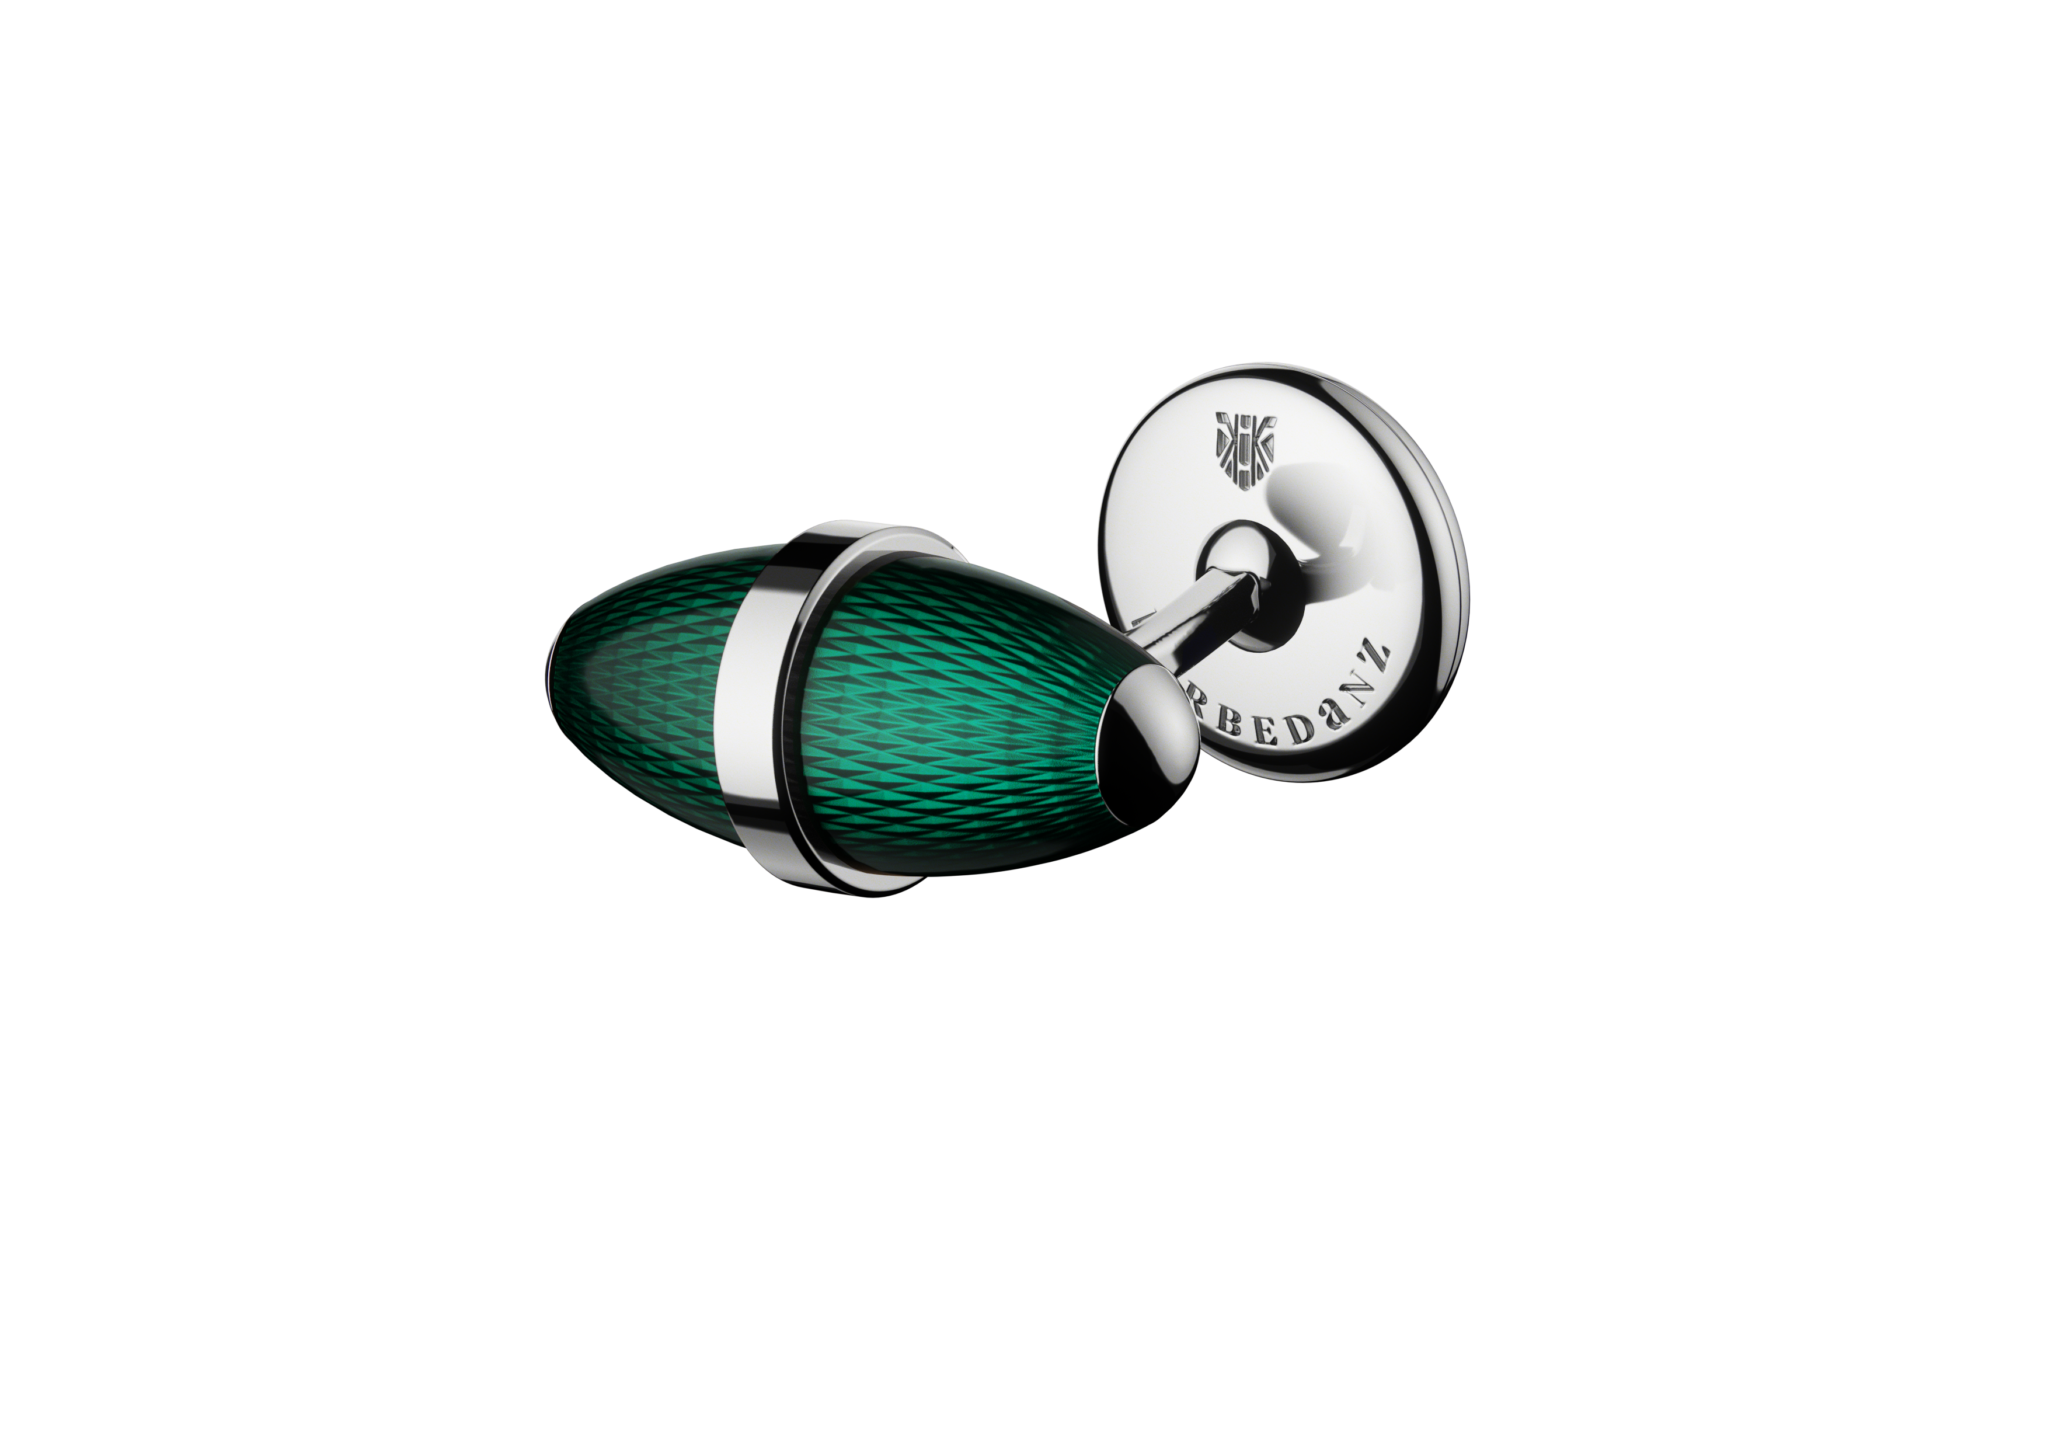 kerbedanz_Cufflinks_Ogive_TURQUOISE_FACE_Stainless-steel